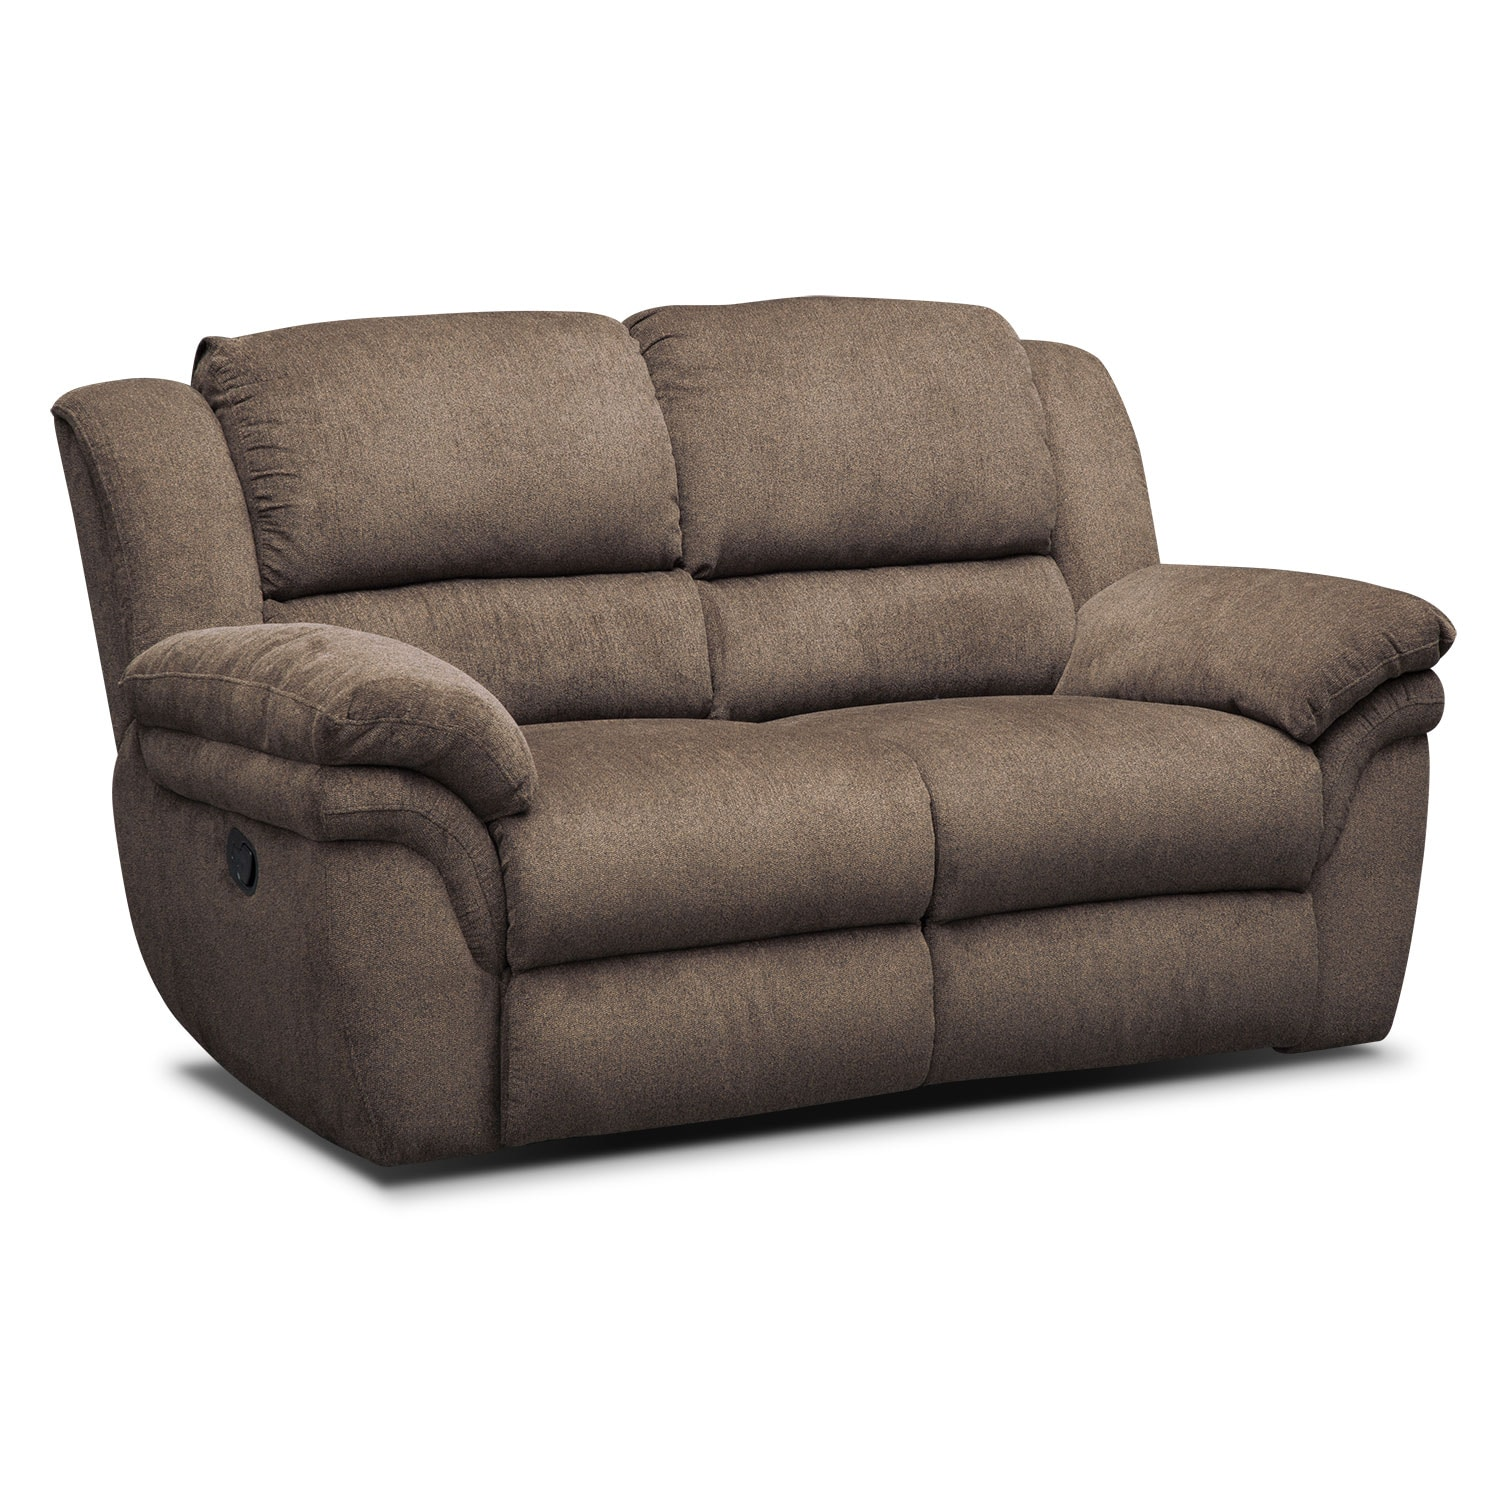 Aldo Manual Reclining Loveseat Mocha Value City Furniture